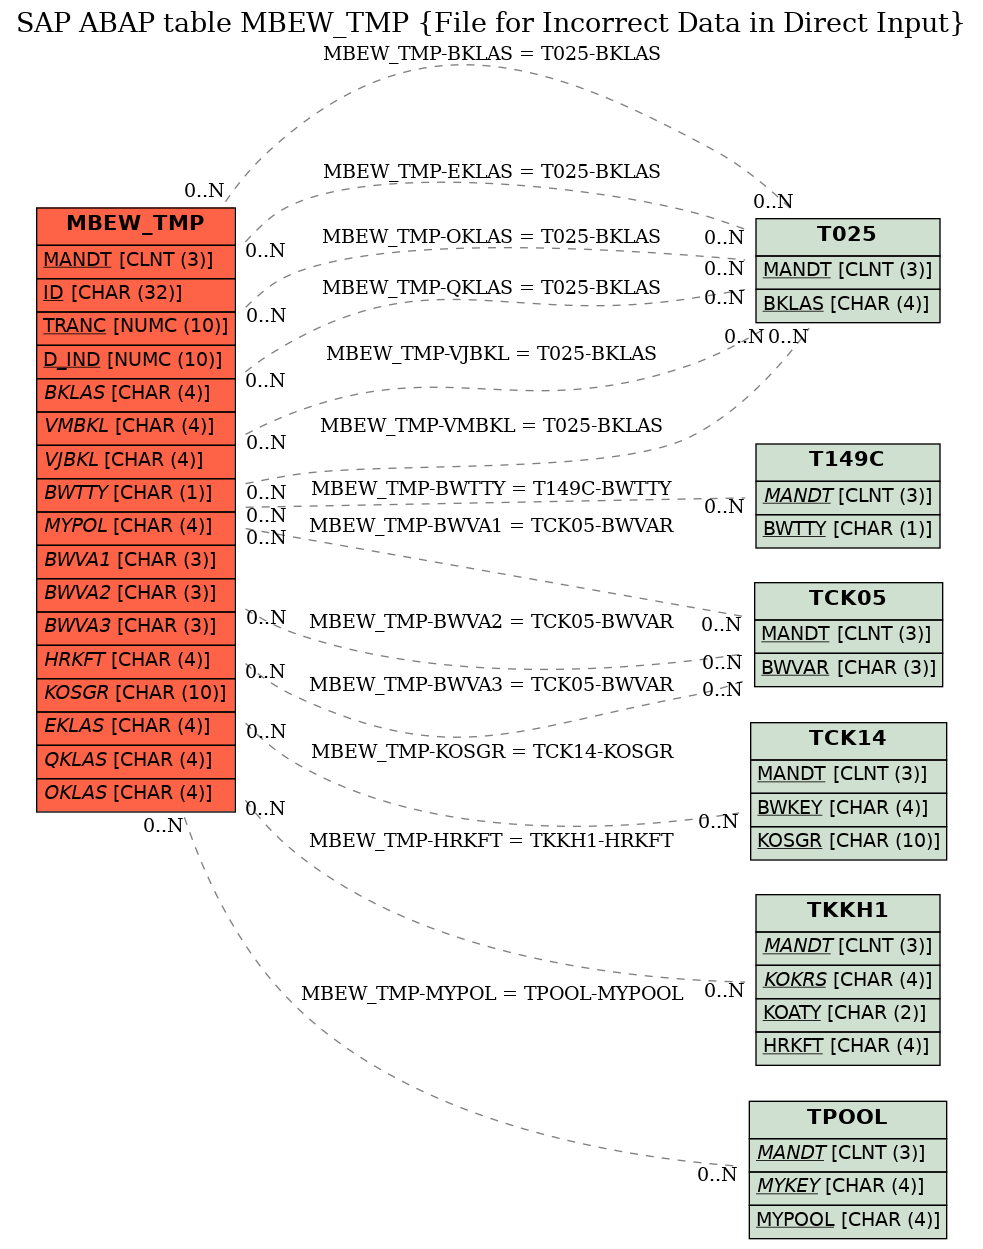 E-R Diagram for table MBEW_TMP (File for Incorrect Data in Direct Input)